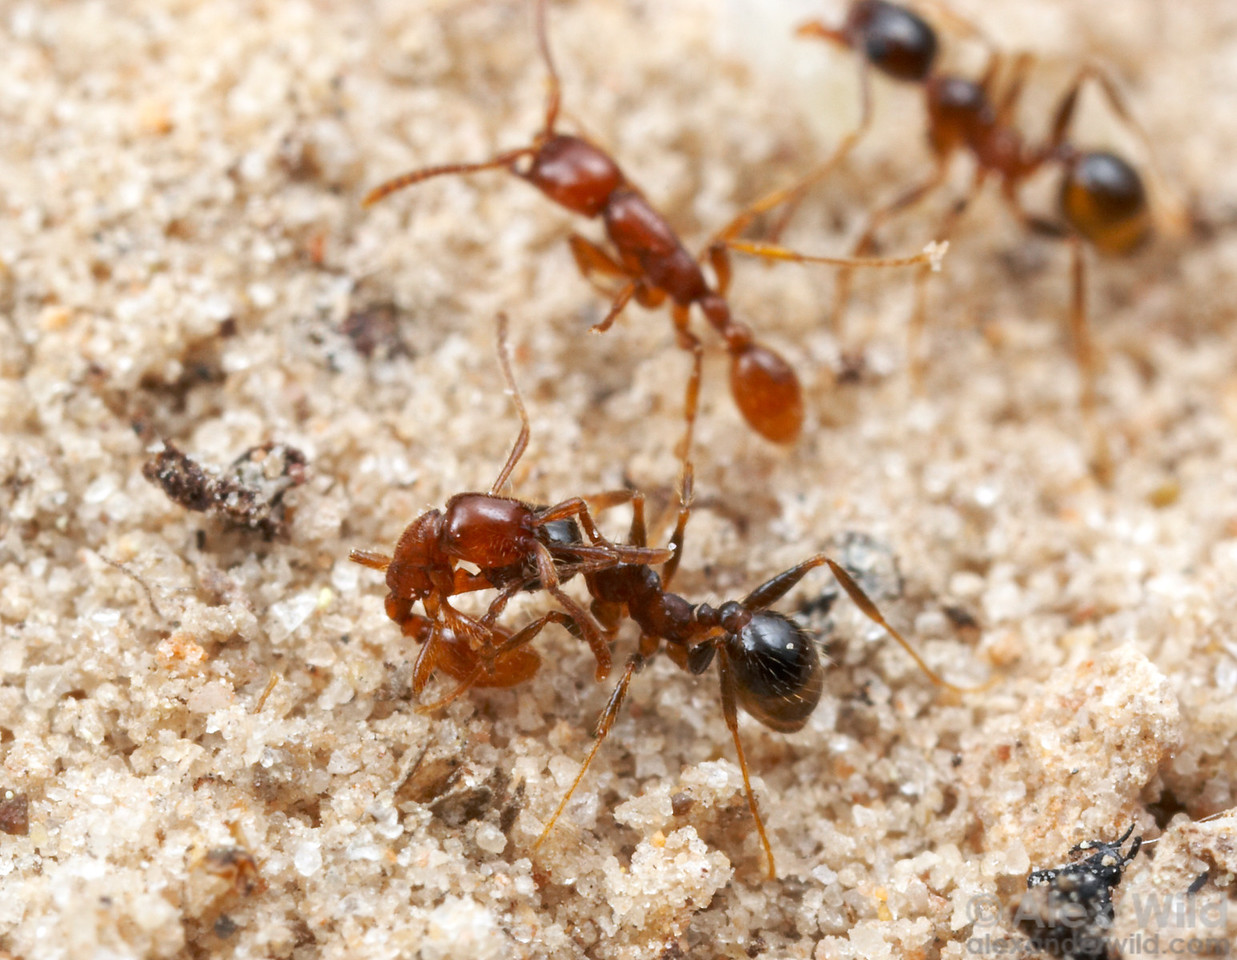 Army ants (red) raid a nest of Pheidole dentata (black) in south Texas. Notice the Pheidole worker in the background absconding with a pupa.  One of the premier defenses of Pheidole against their army ant predators is rapid nest evacuation, carrying as many larvae and pupae as they can manage.   Smithville, Texas, USA